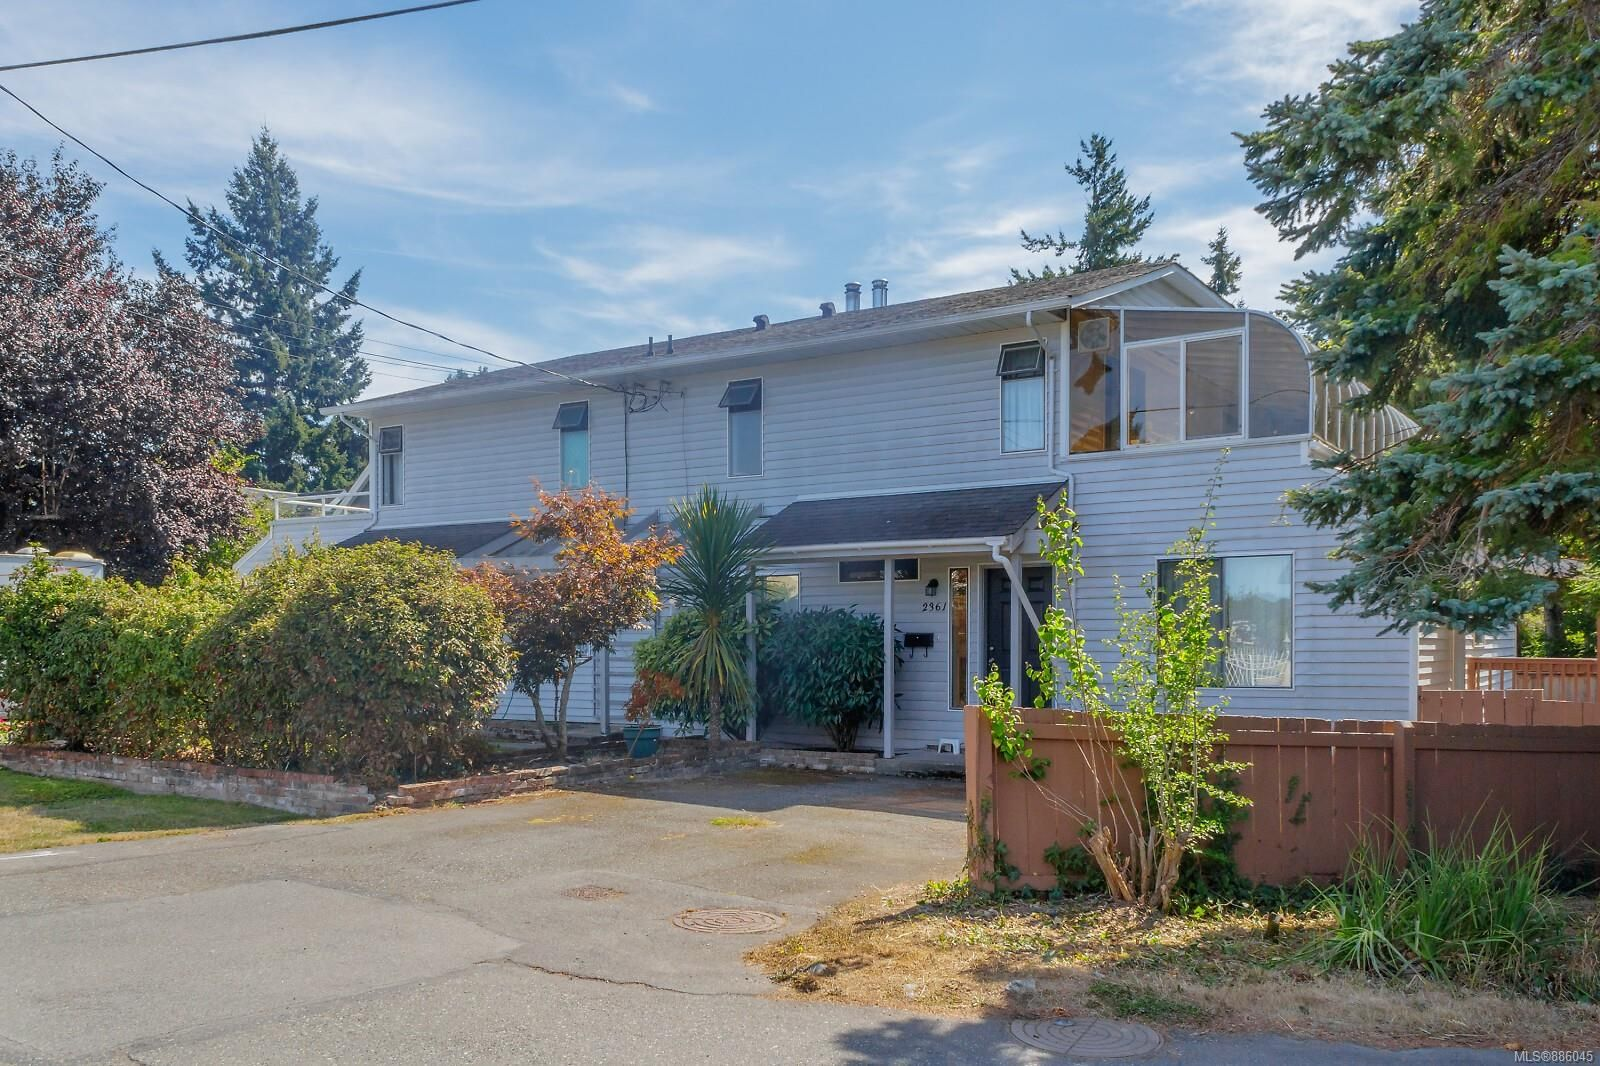 Main Photo: 2361 Amherst Ave in : Si Sidney North-East Half Duplex for sale (Sidney)  : MLS®# 886045